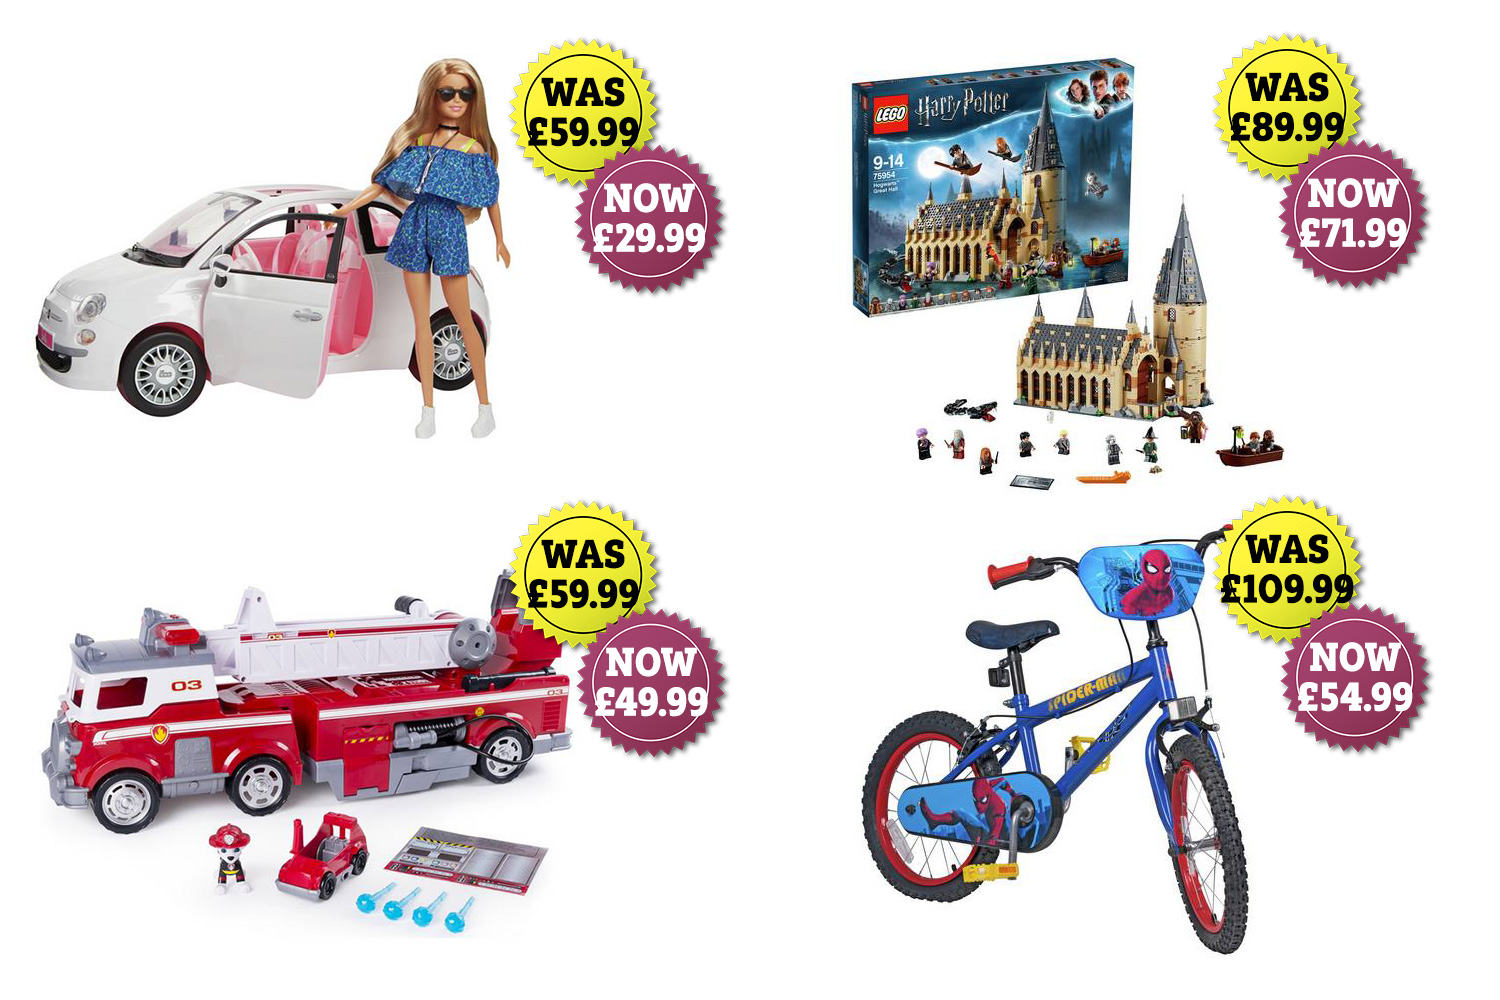 3 Wheel Prams Argos Argos Launches Massive Half Price Sale On Hundreds Of Toys